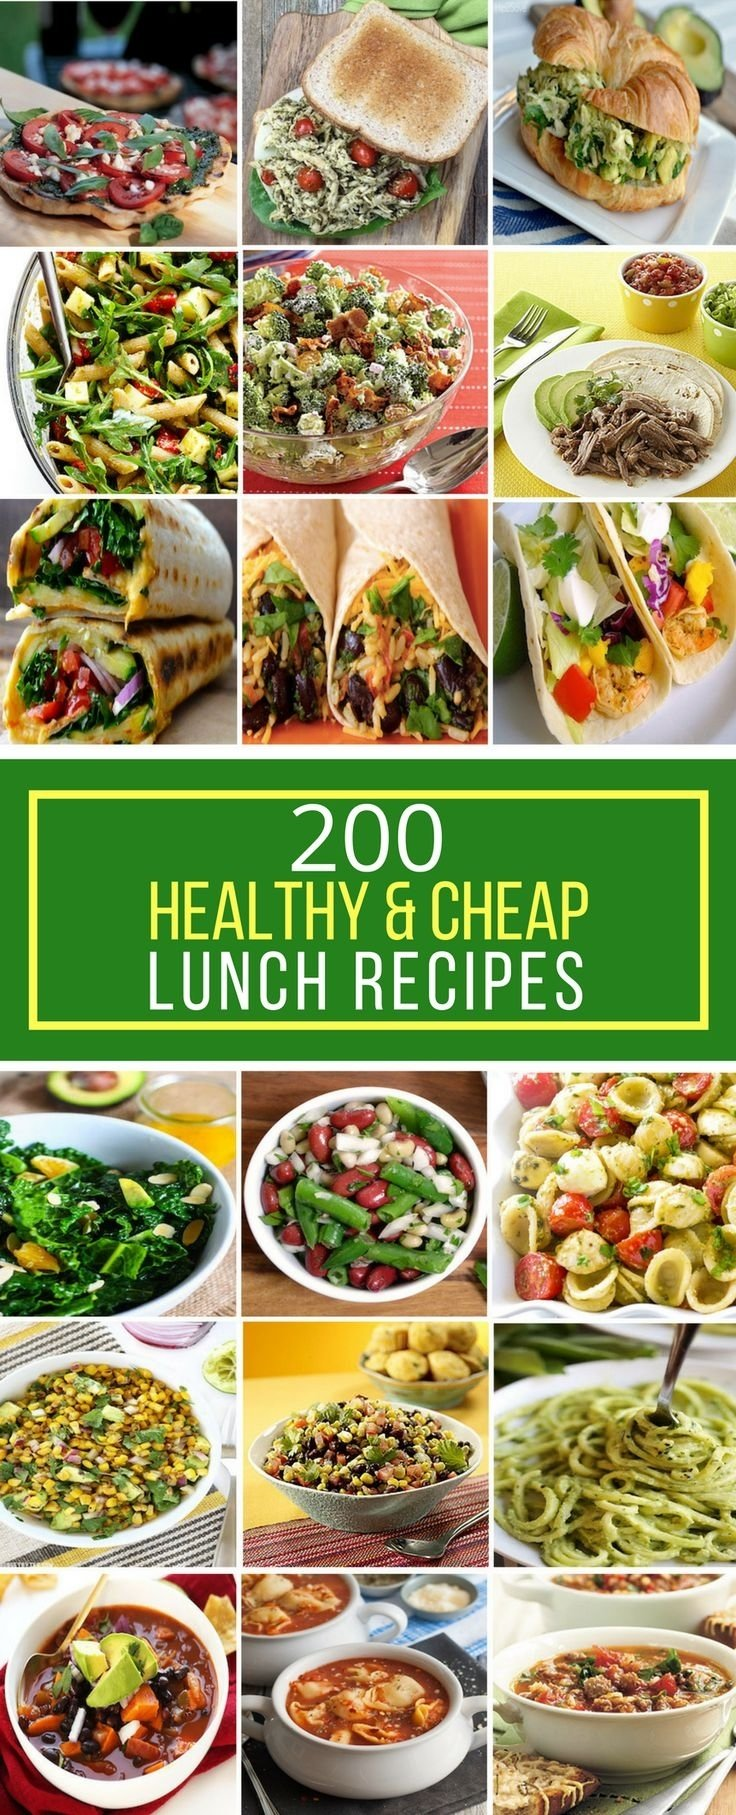 10 Attractive Cheap Lunch Ideas For Work 477 best school lunch ideas images on pinterest kid lunches 2020